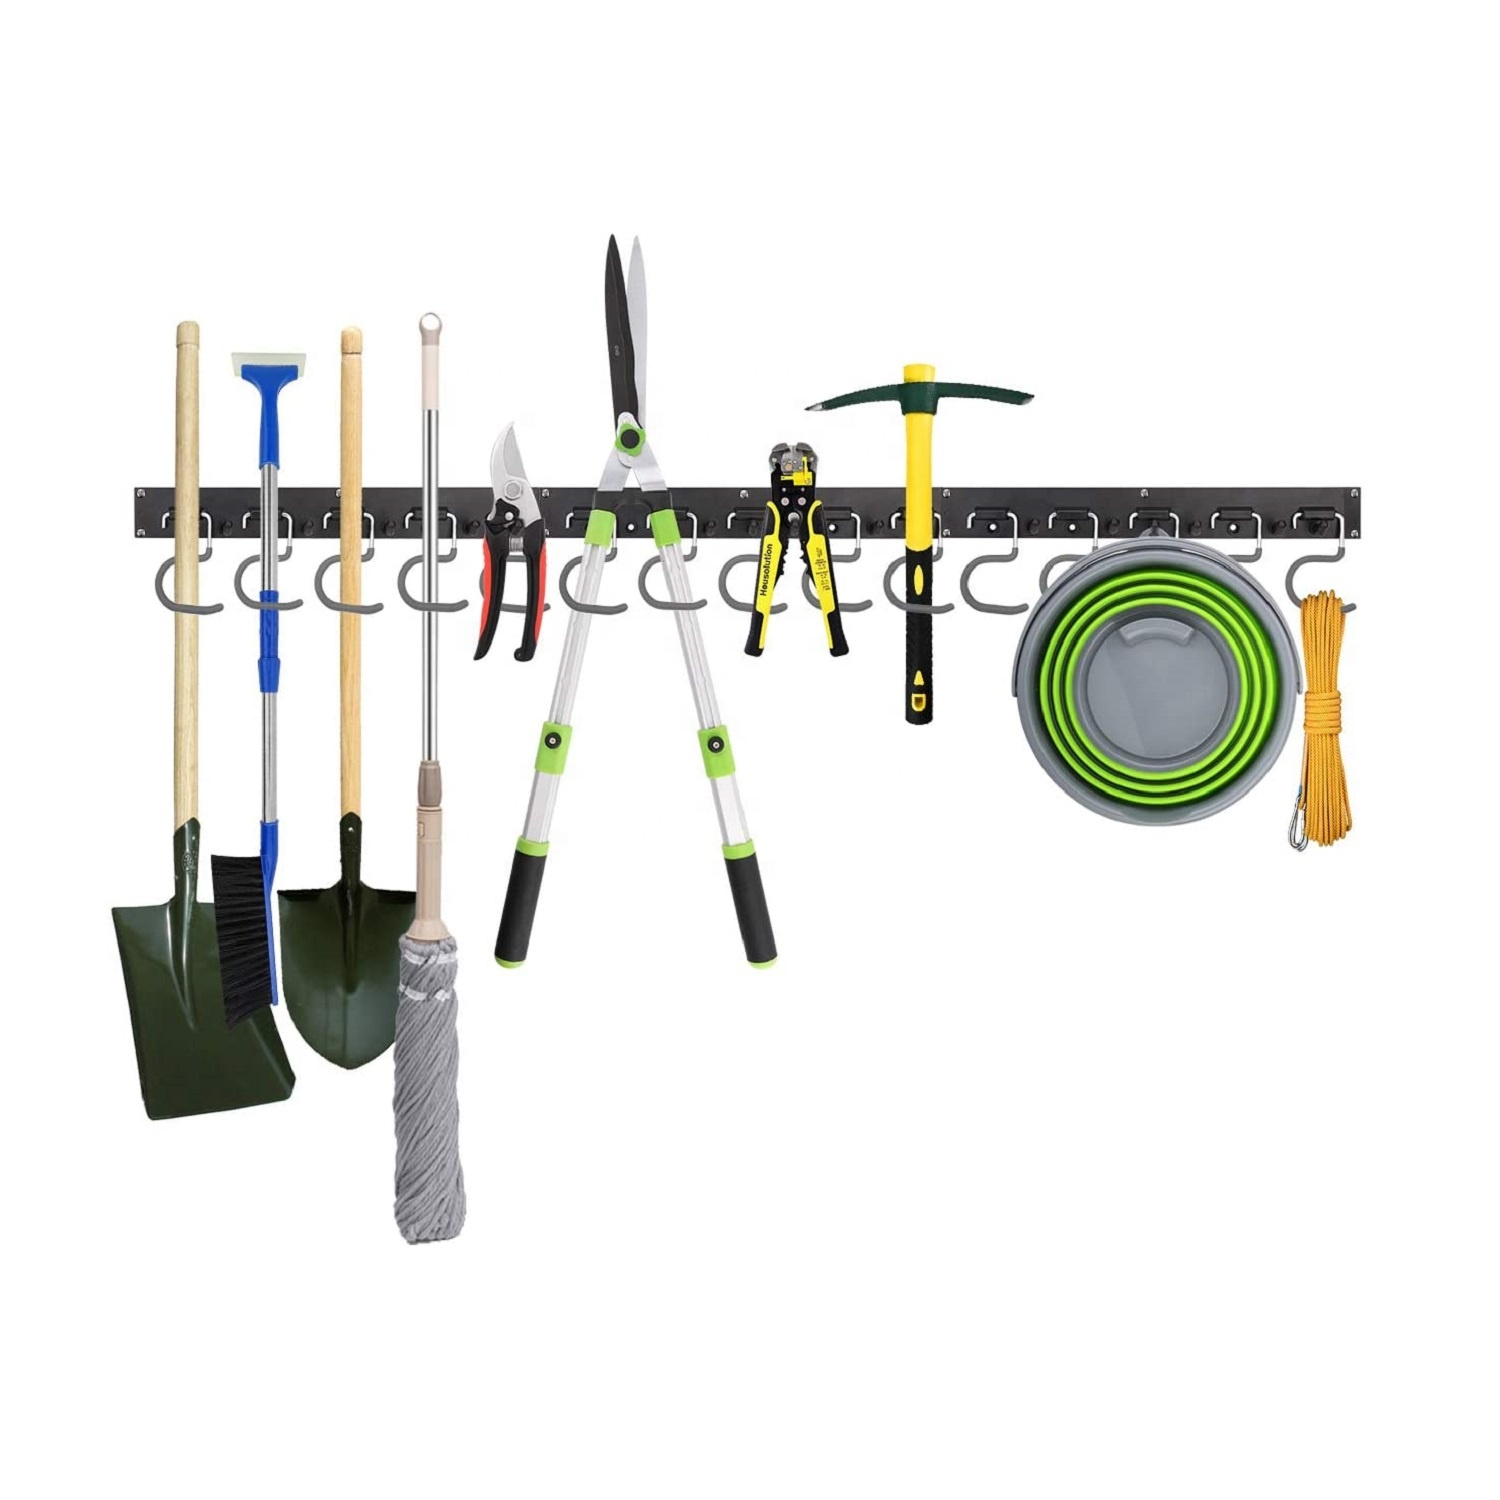 Wall Mount Tool Organizer Garage Hook Garden Tool Bracket Adjustable Storage System 48 Inch Wall <strong>Holders</strong>